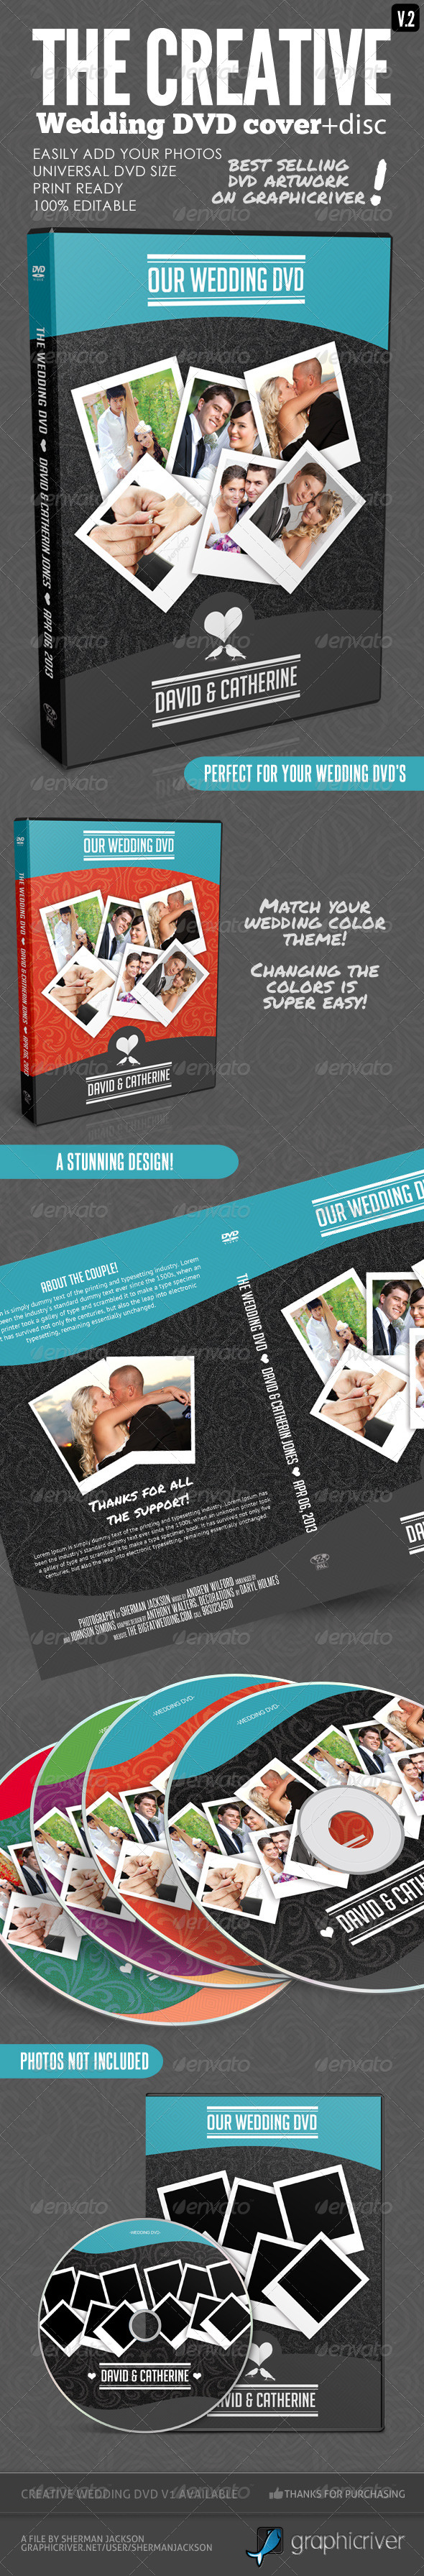 GraphicRiver Creative Wedding DVD Covers & Disc Label V.2 4437574